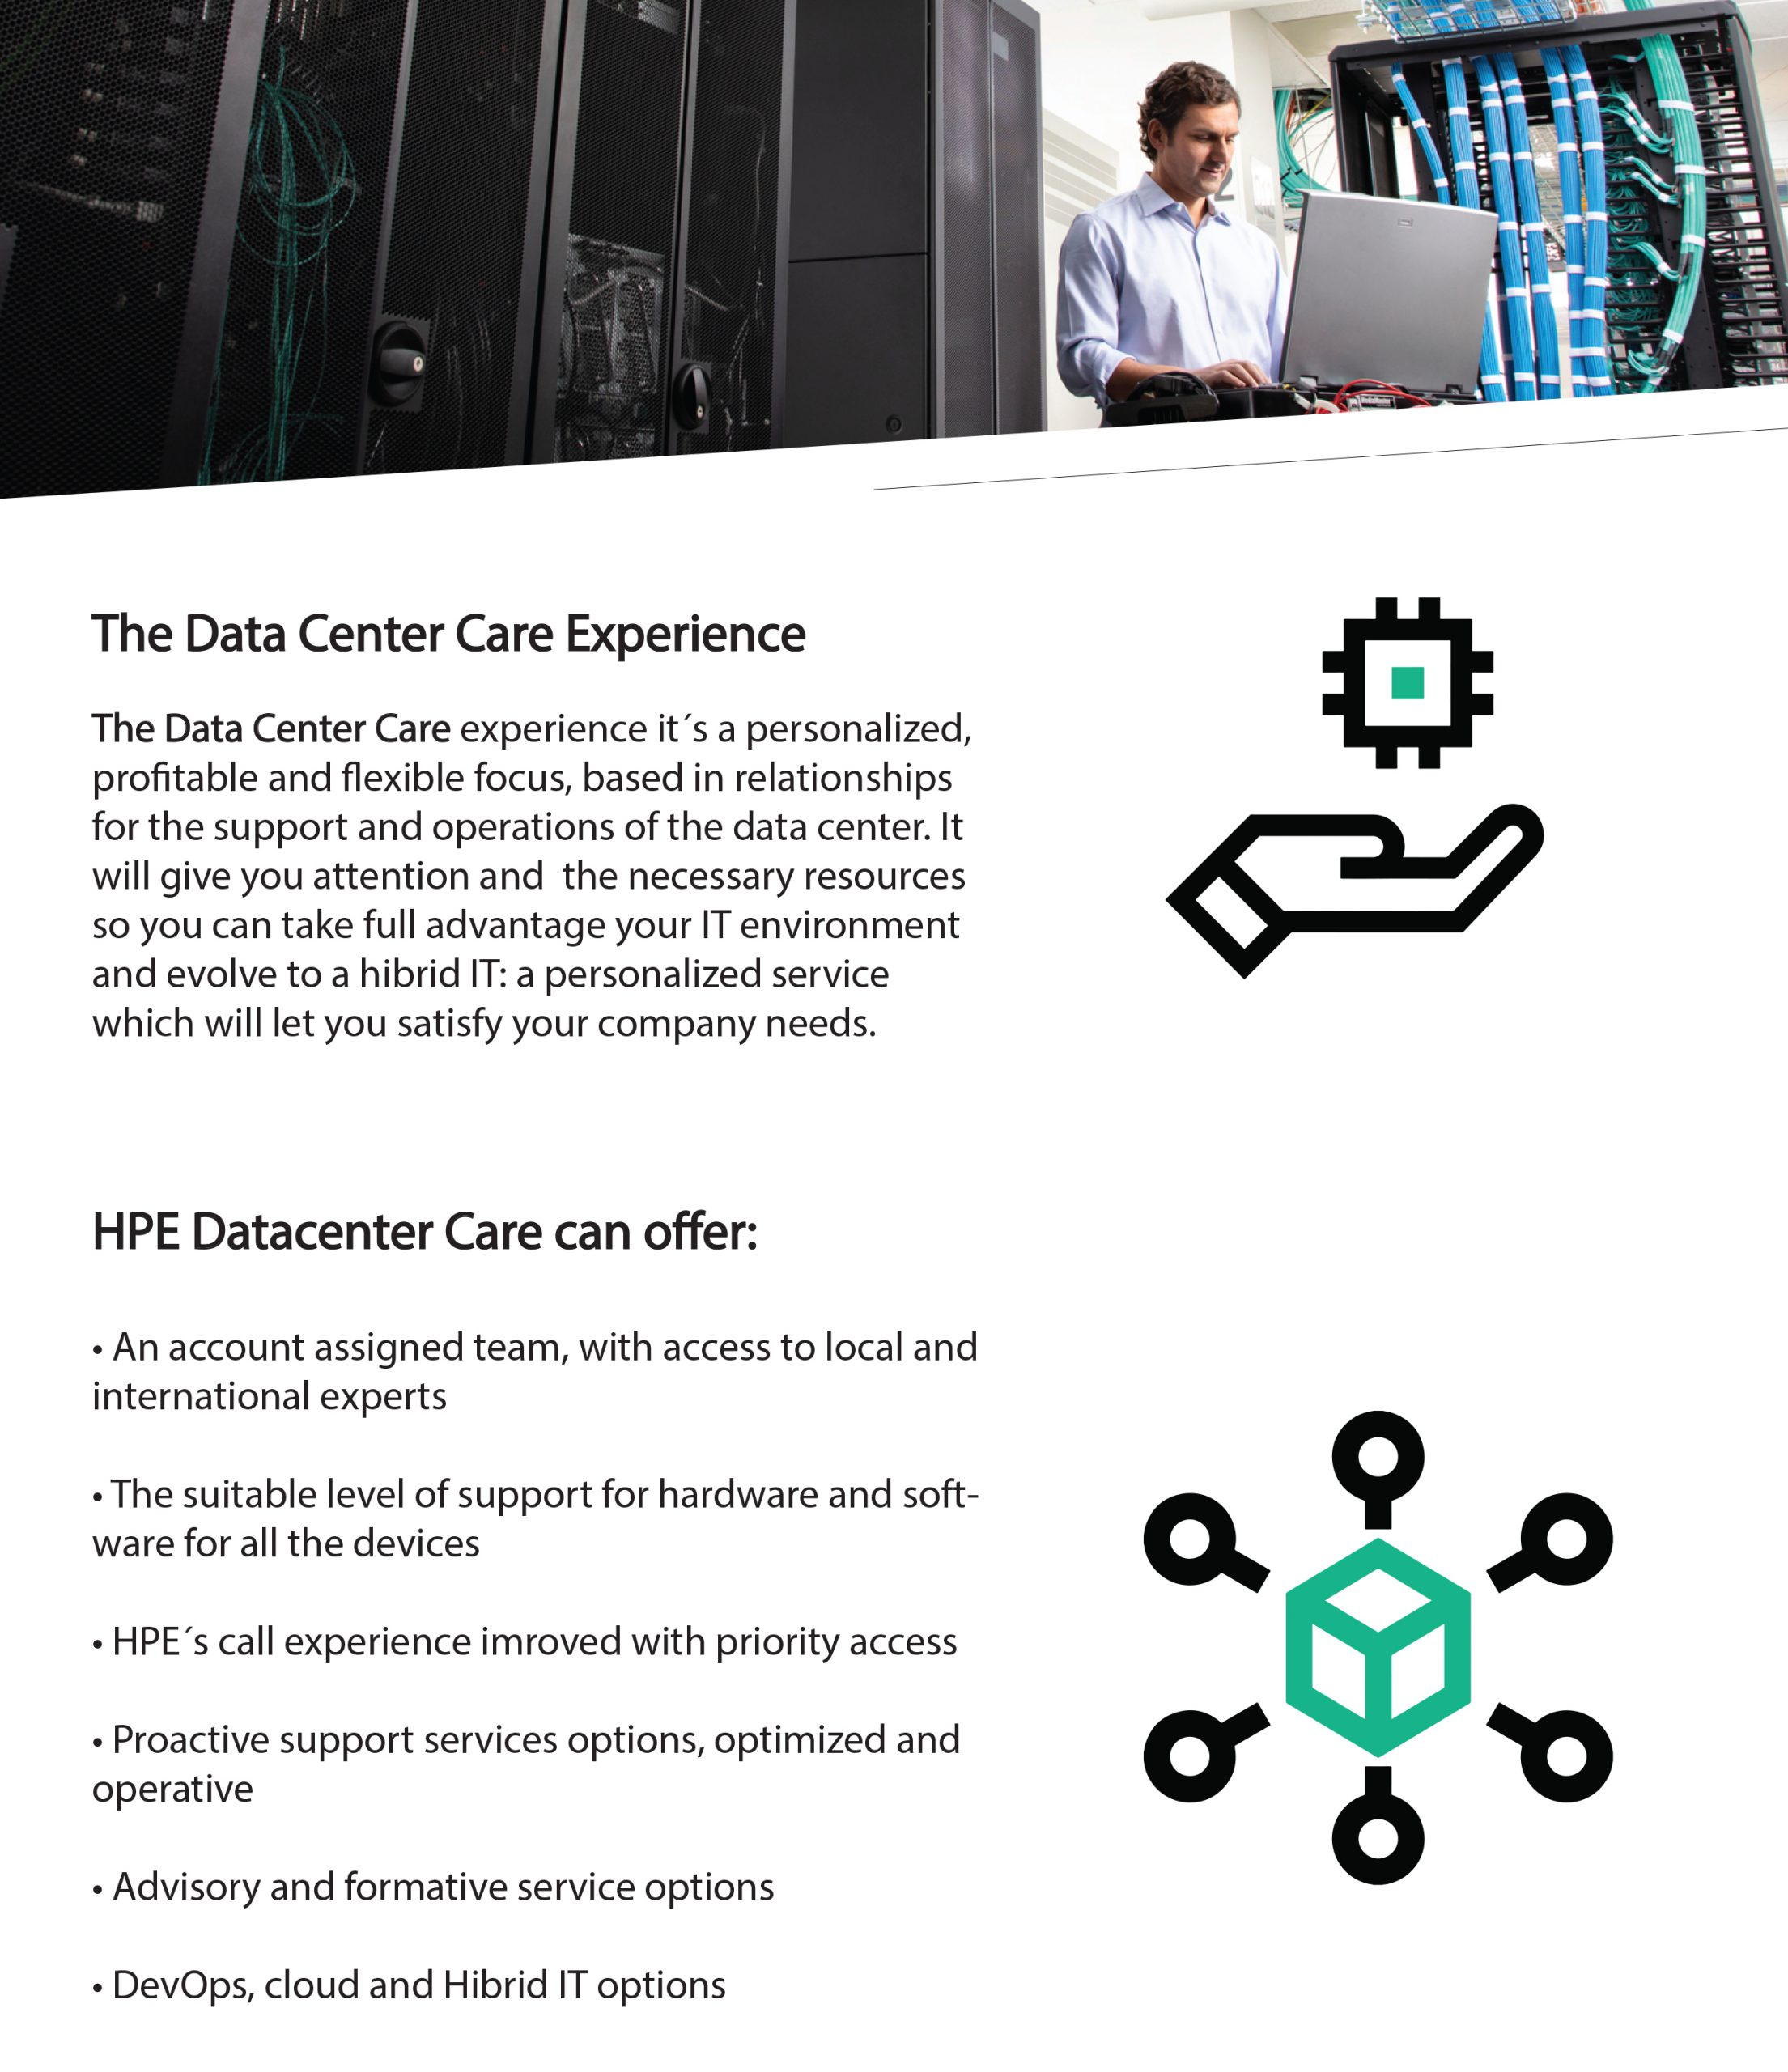 HPE DC Care